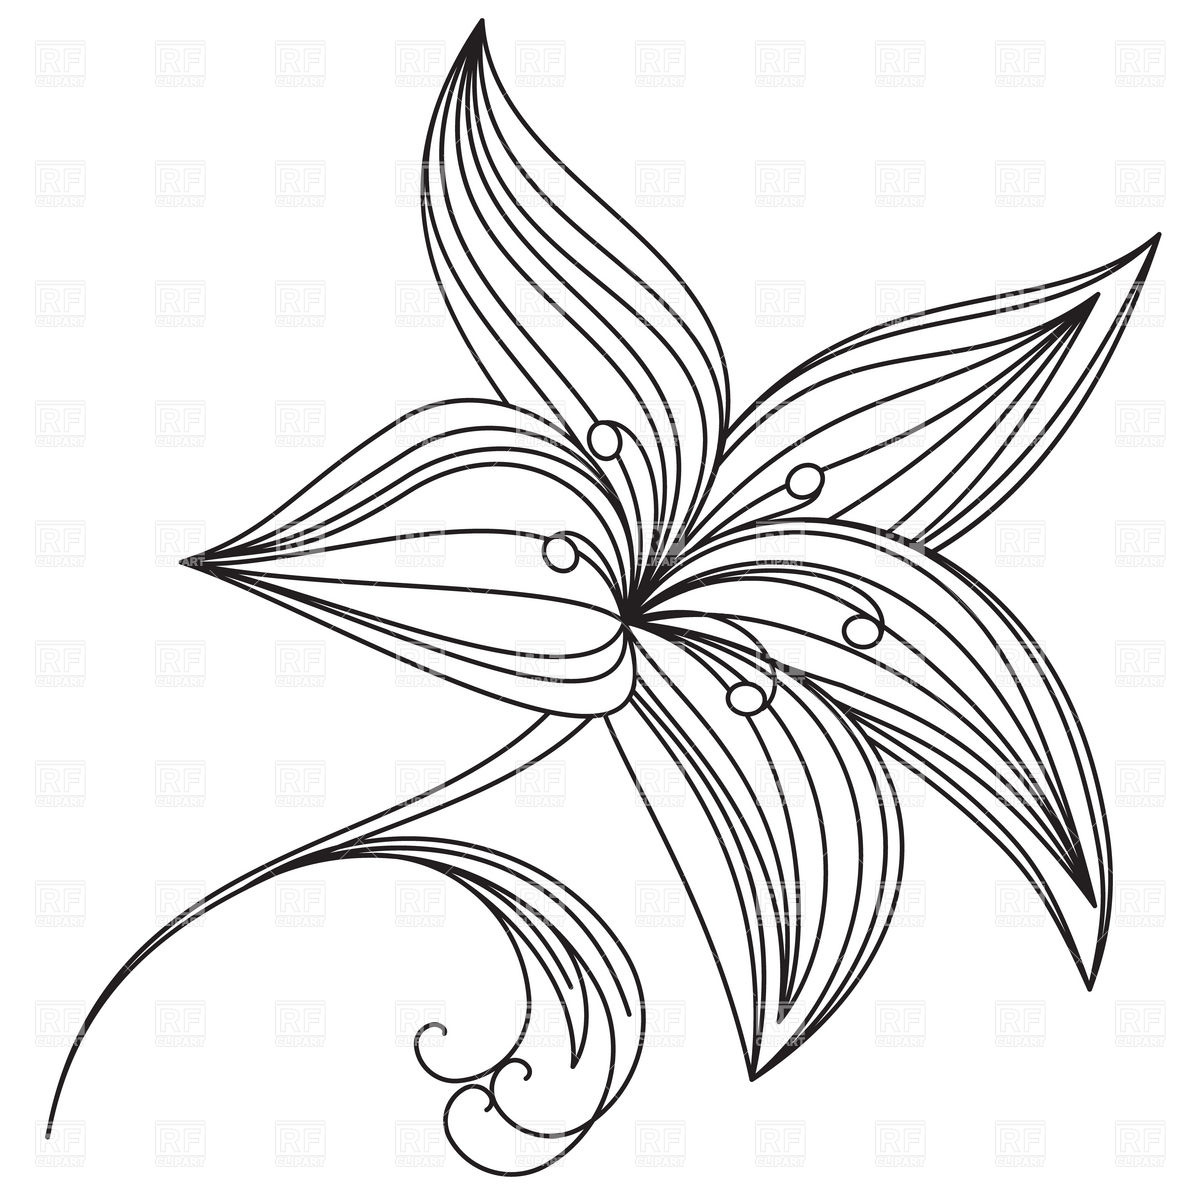 Lily drawing tattoo at getdrawings free for personal use lily 1200x1200 drawn lily beautiful flower izmirmasajfo Choice Image